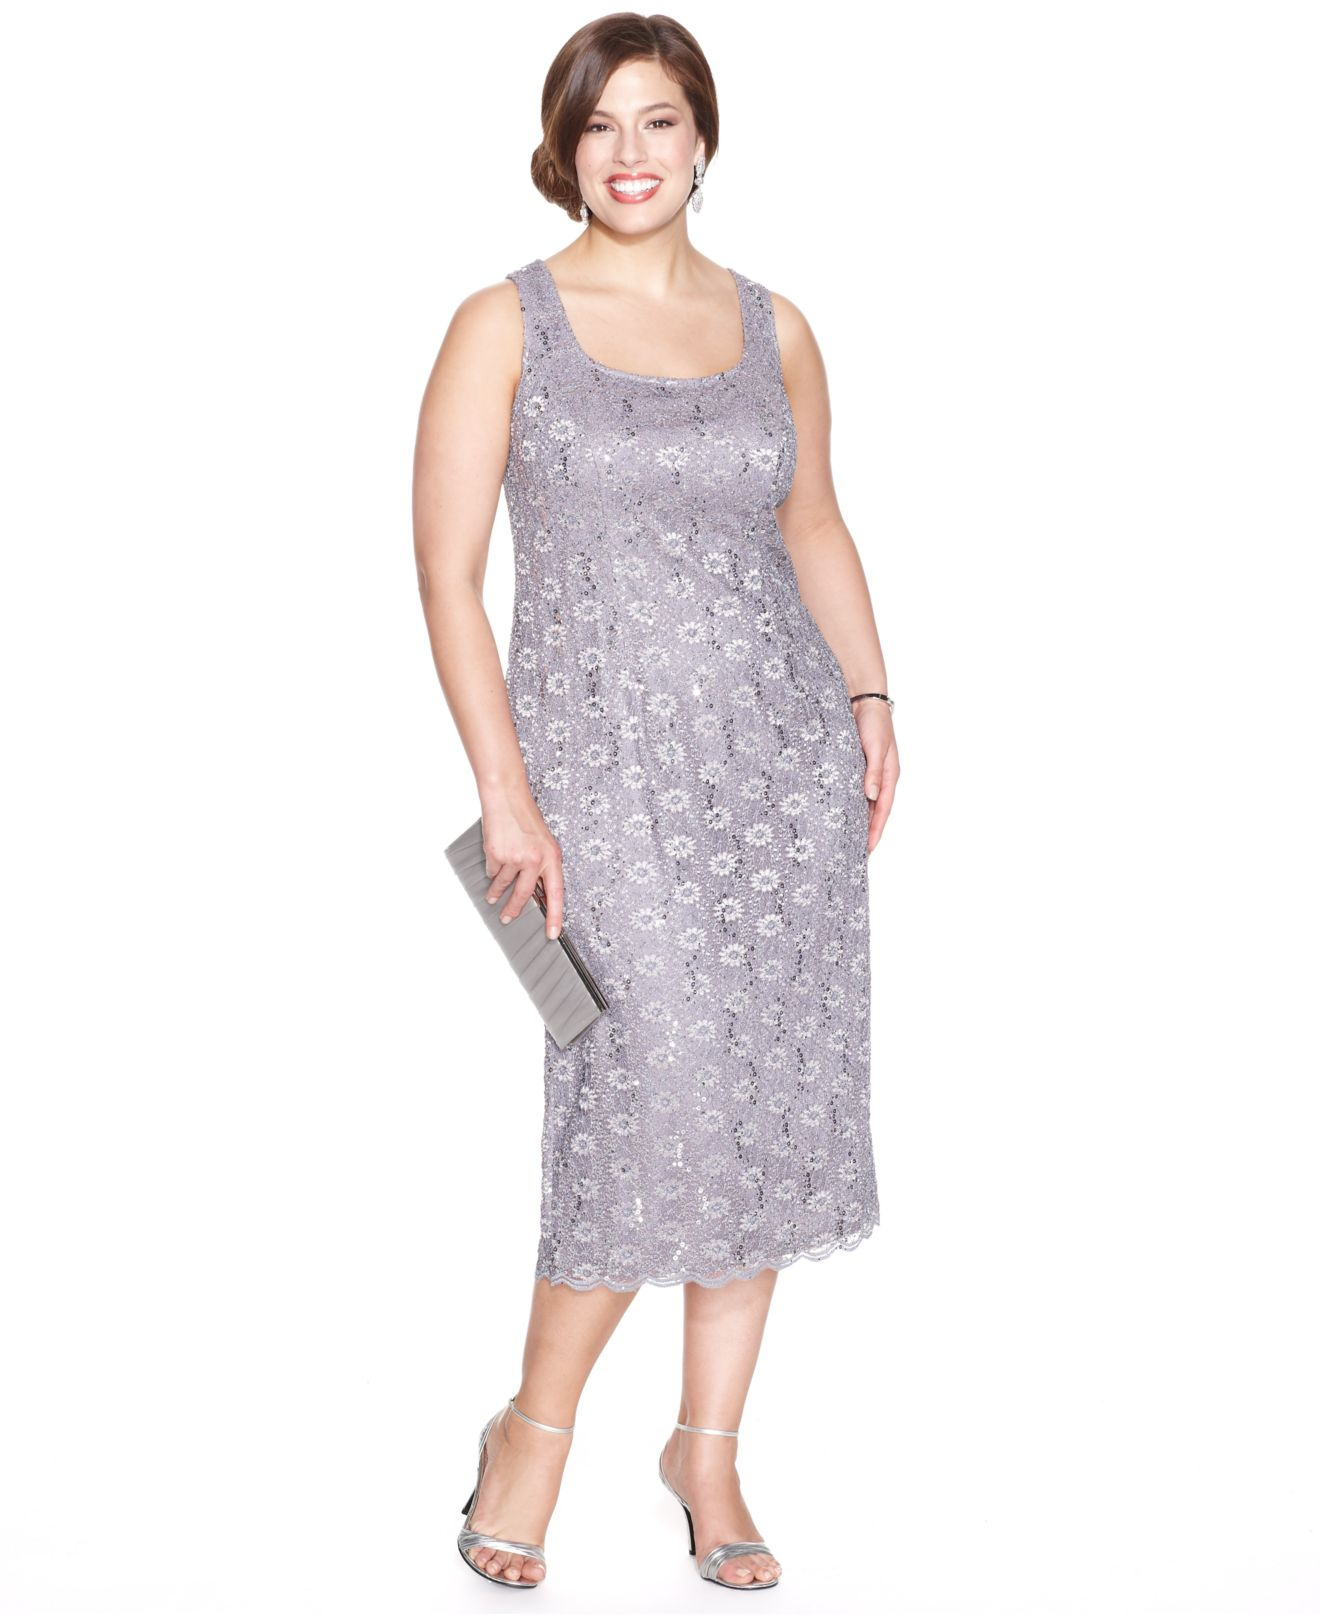 09237b1f15d Lyst - Alex Evenings Plus Size Sequin Lace Dress And Jacket in Gray